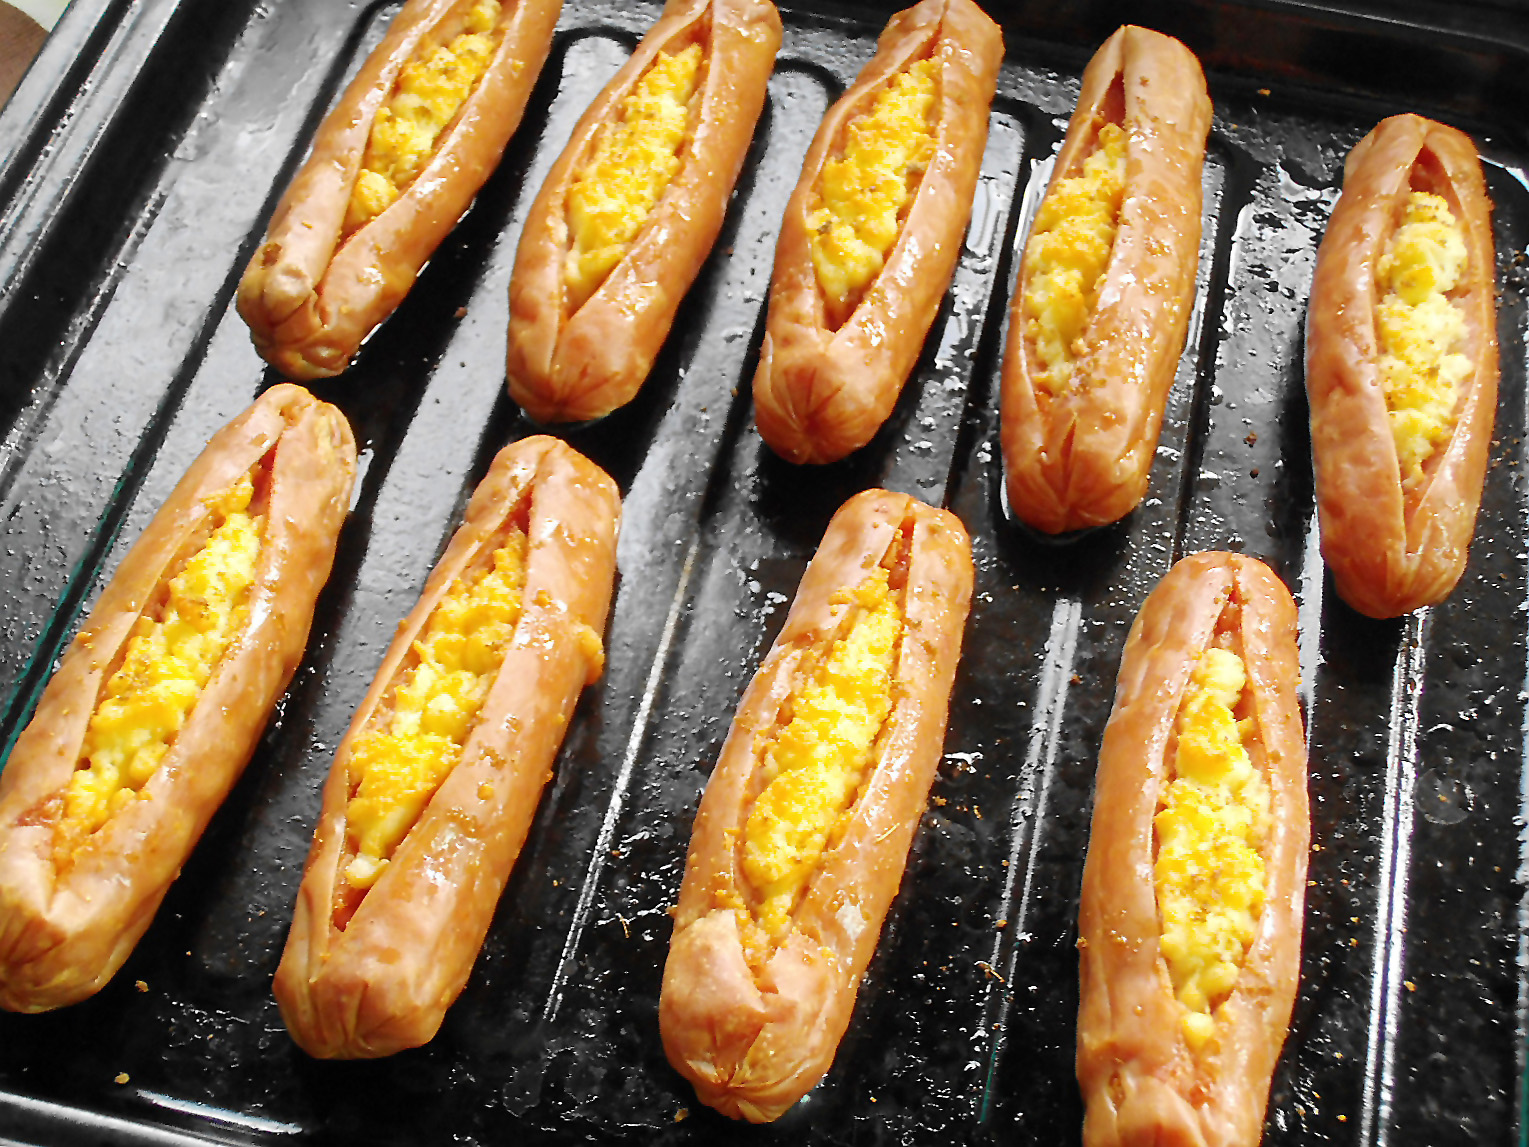 Baked sausages with cheese